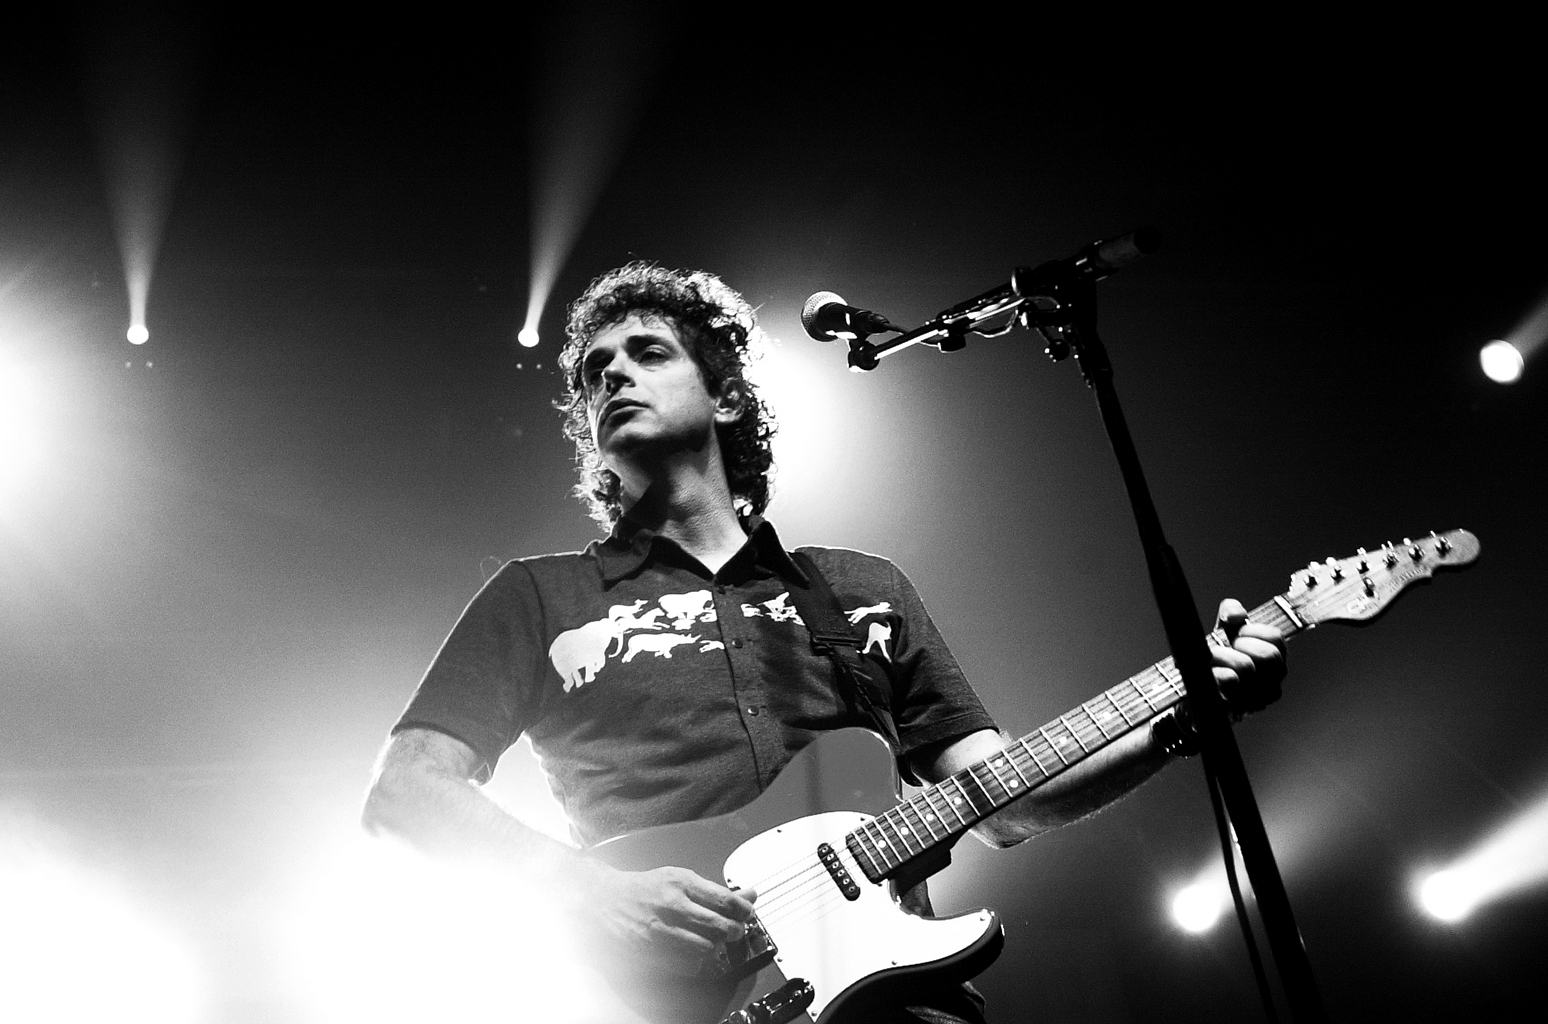 A low angle shot of Cerati playing the electric guitar